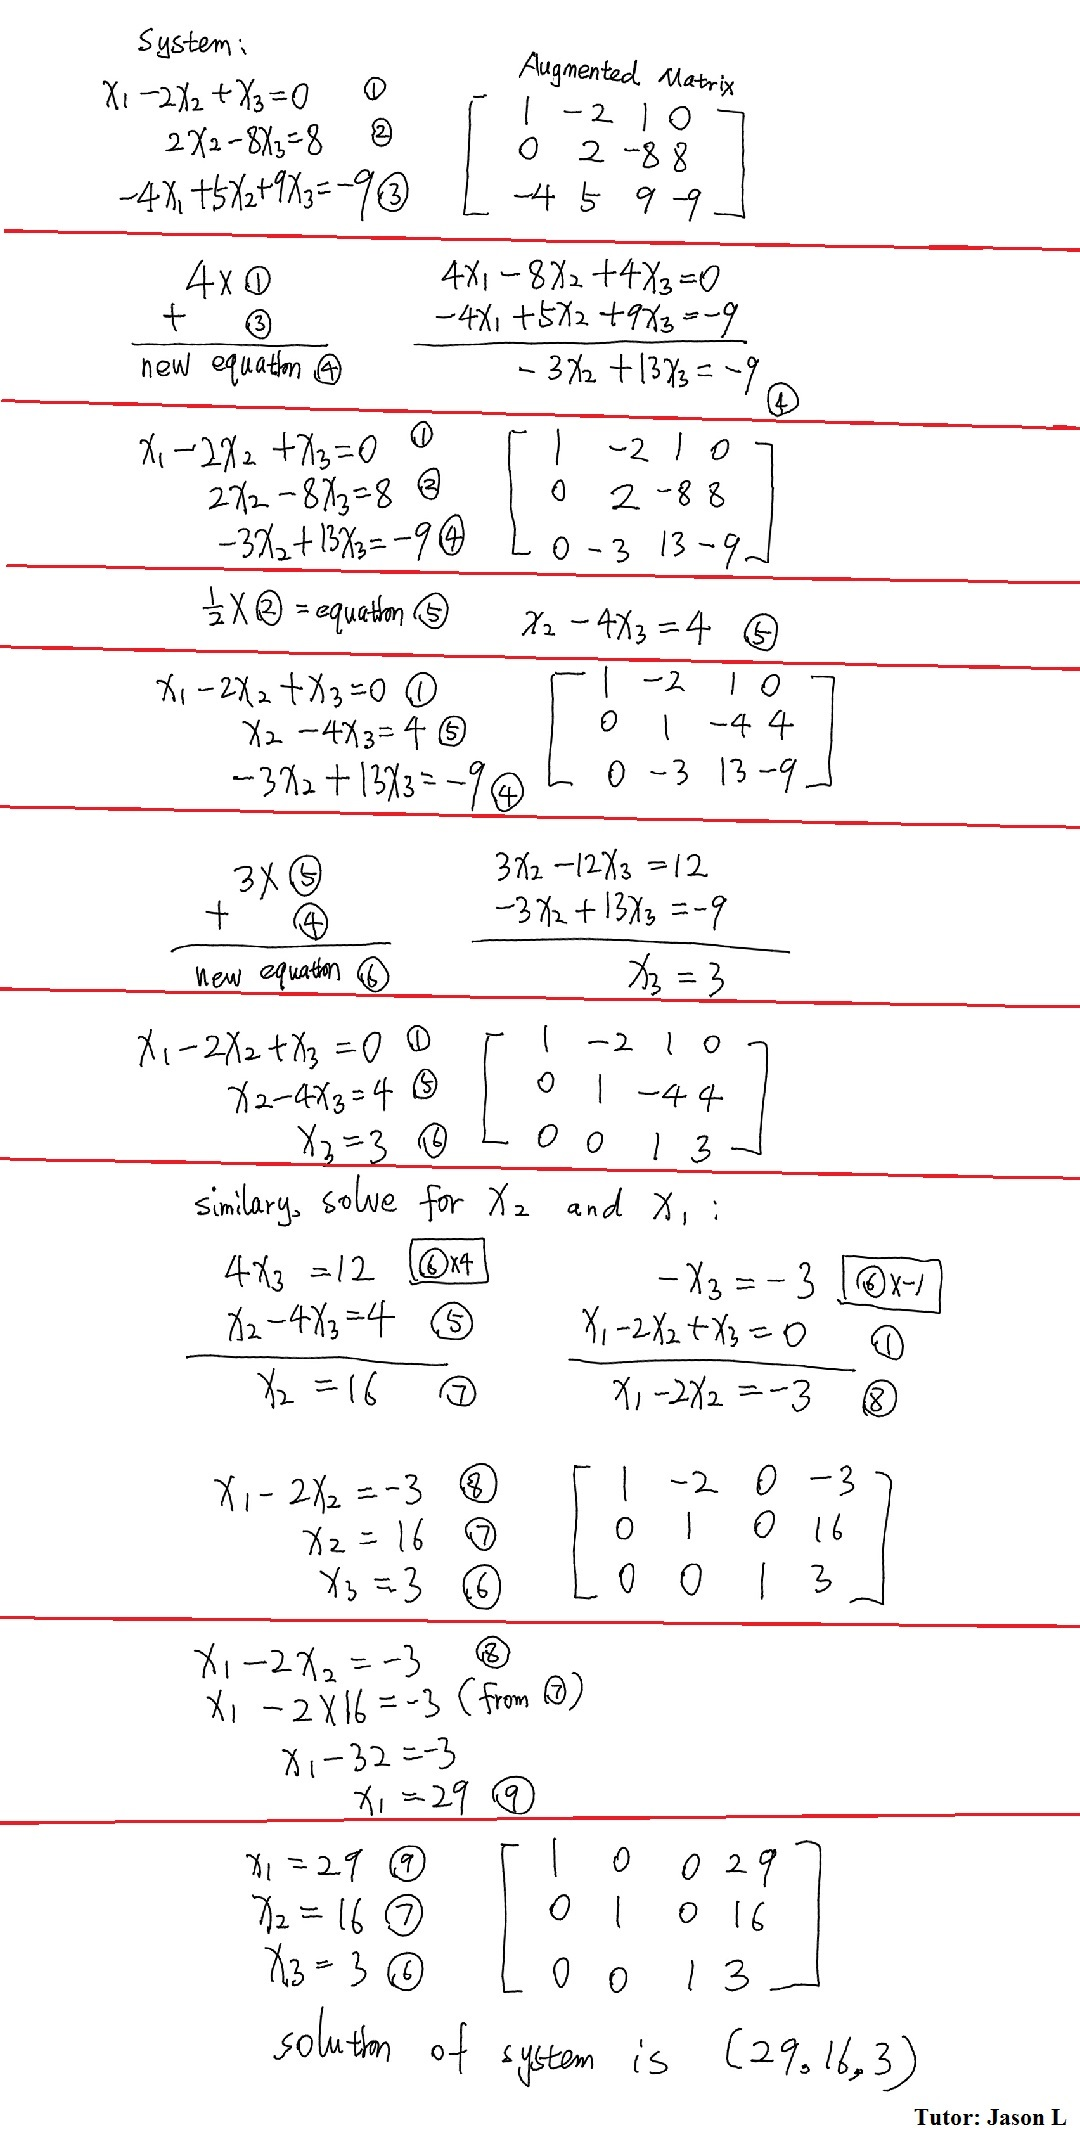 Solving Systems Of Equations Using Augmented Matrices